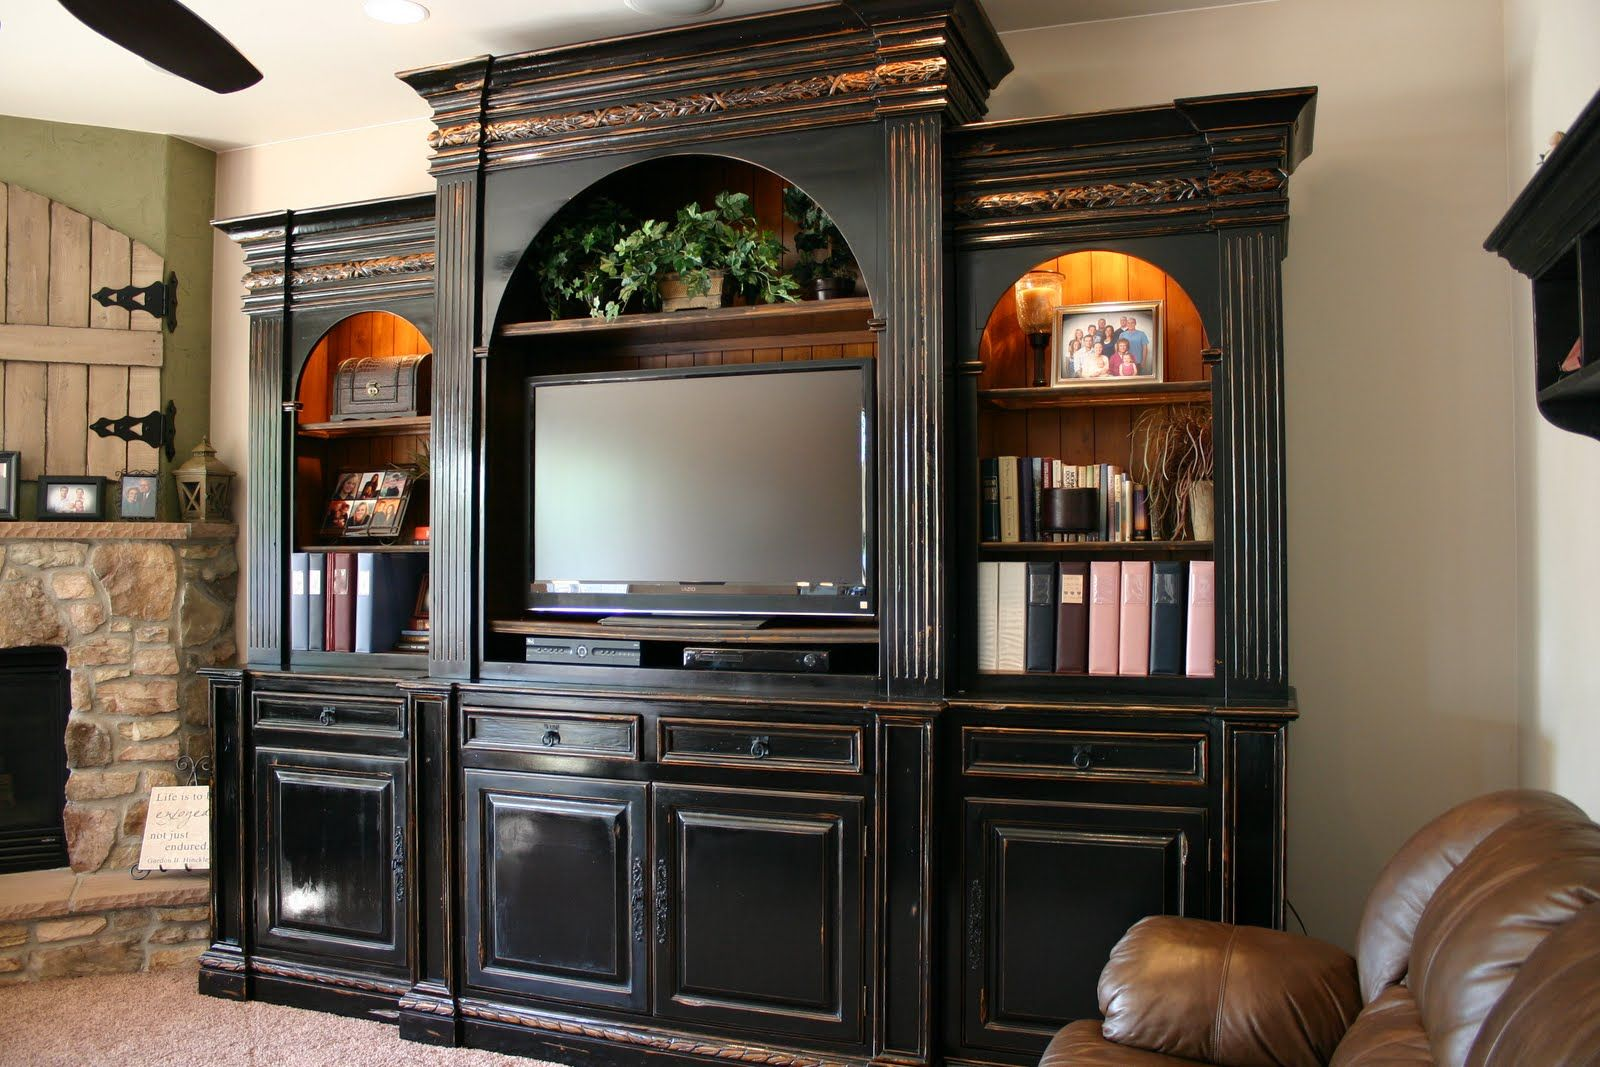 Fascintng Black Entertainment Center Cabinets in Family ...